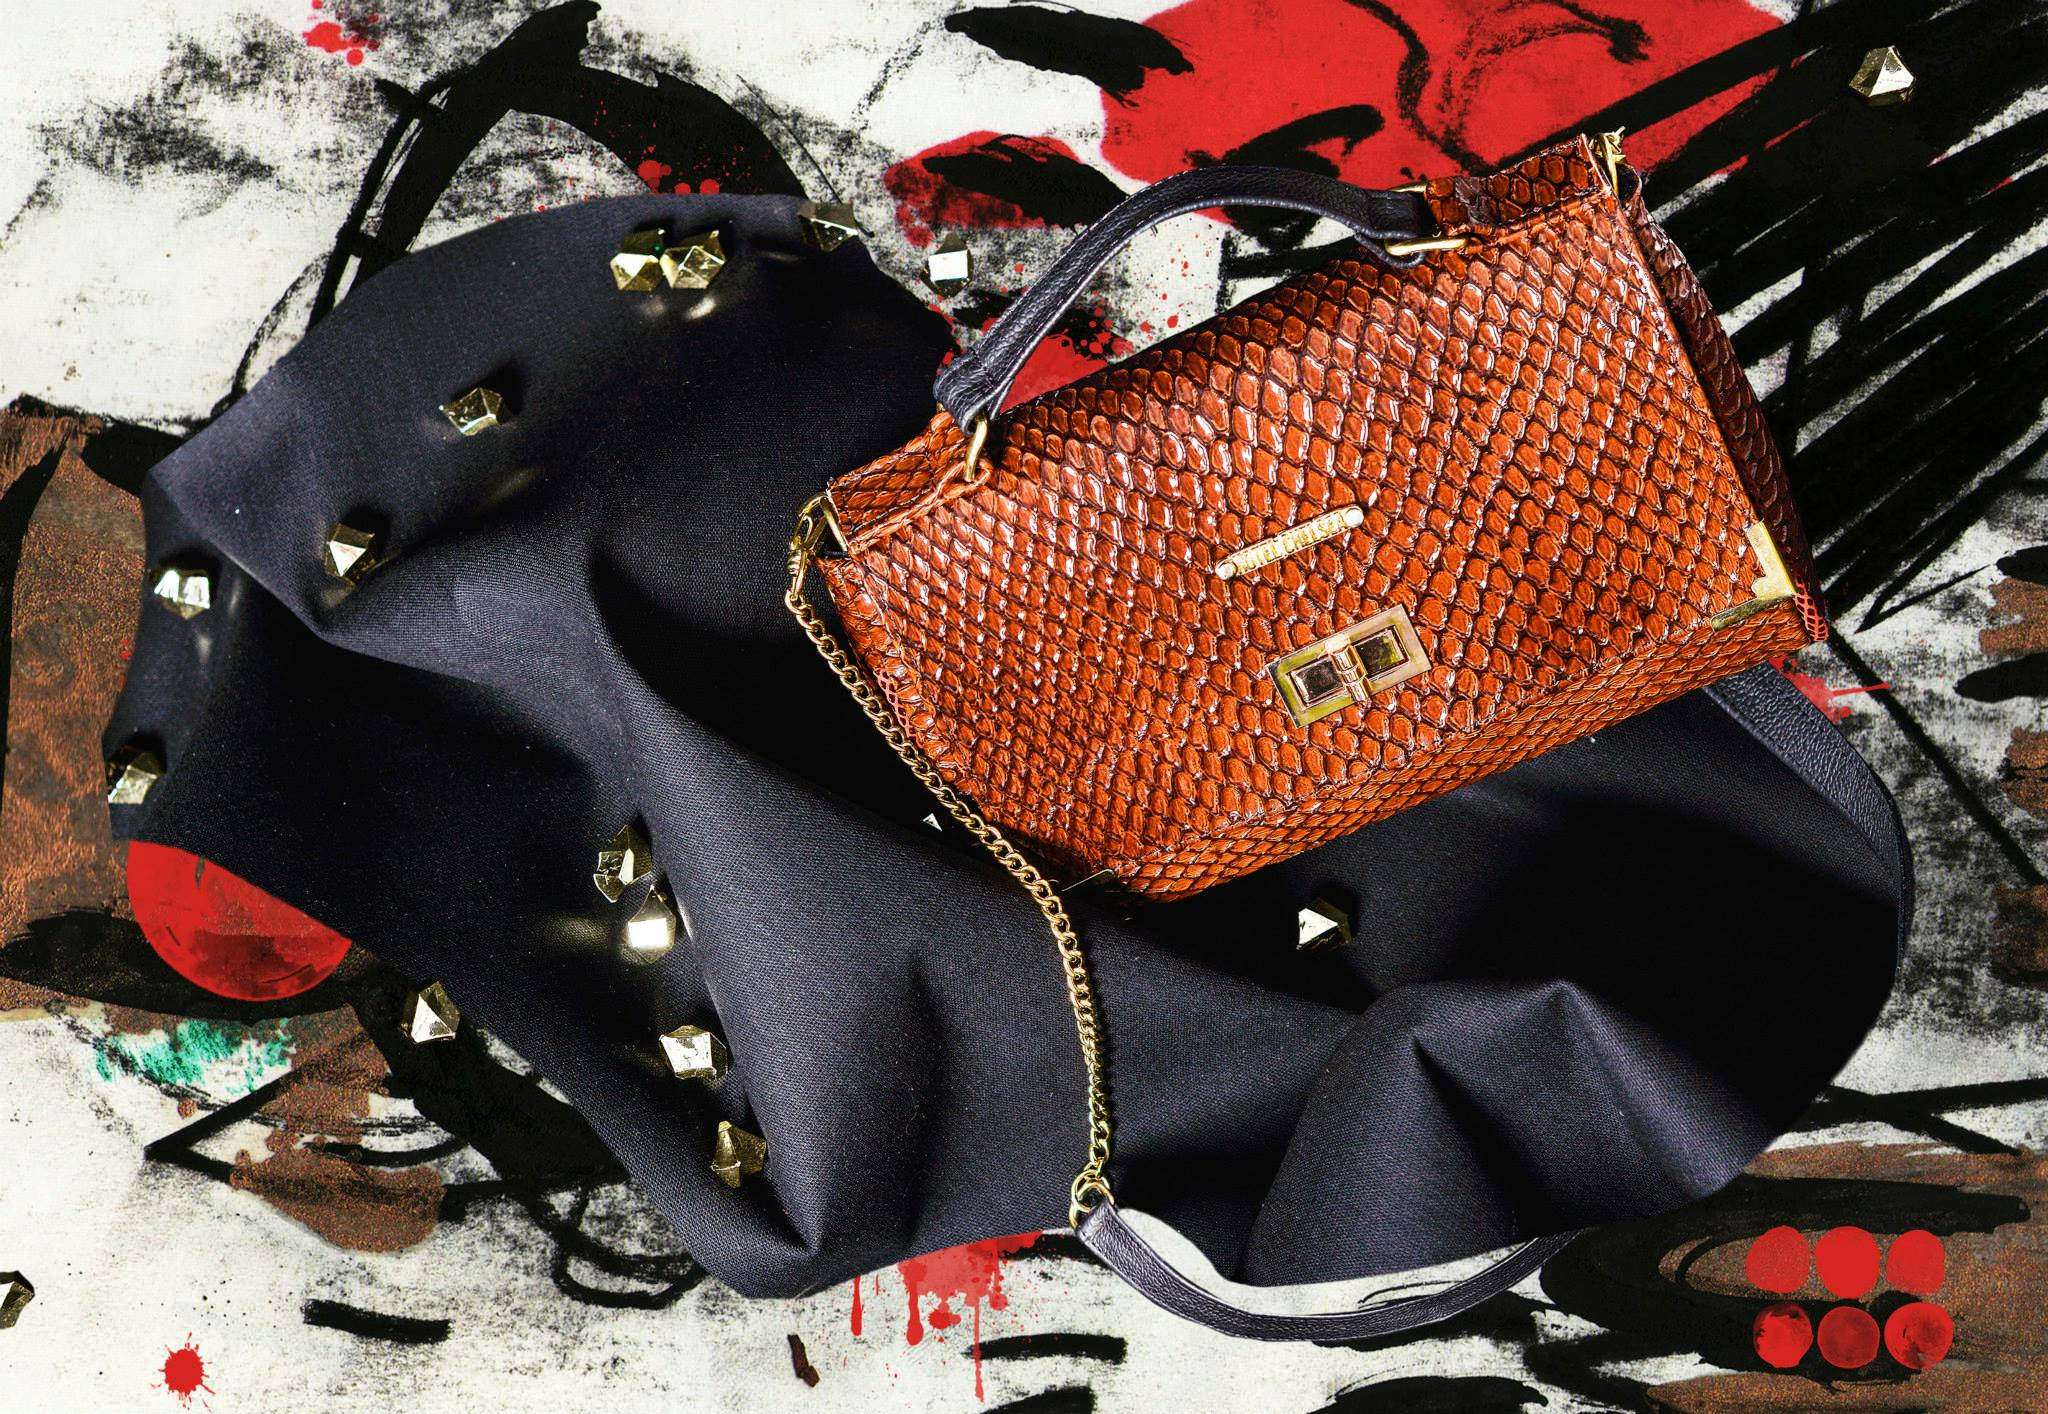 Hotel Chelsea Bags: Amor Sideral